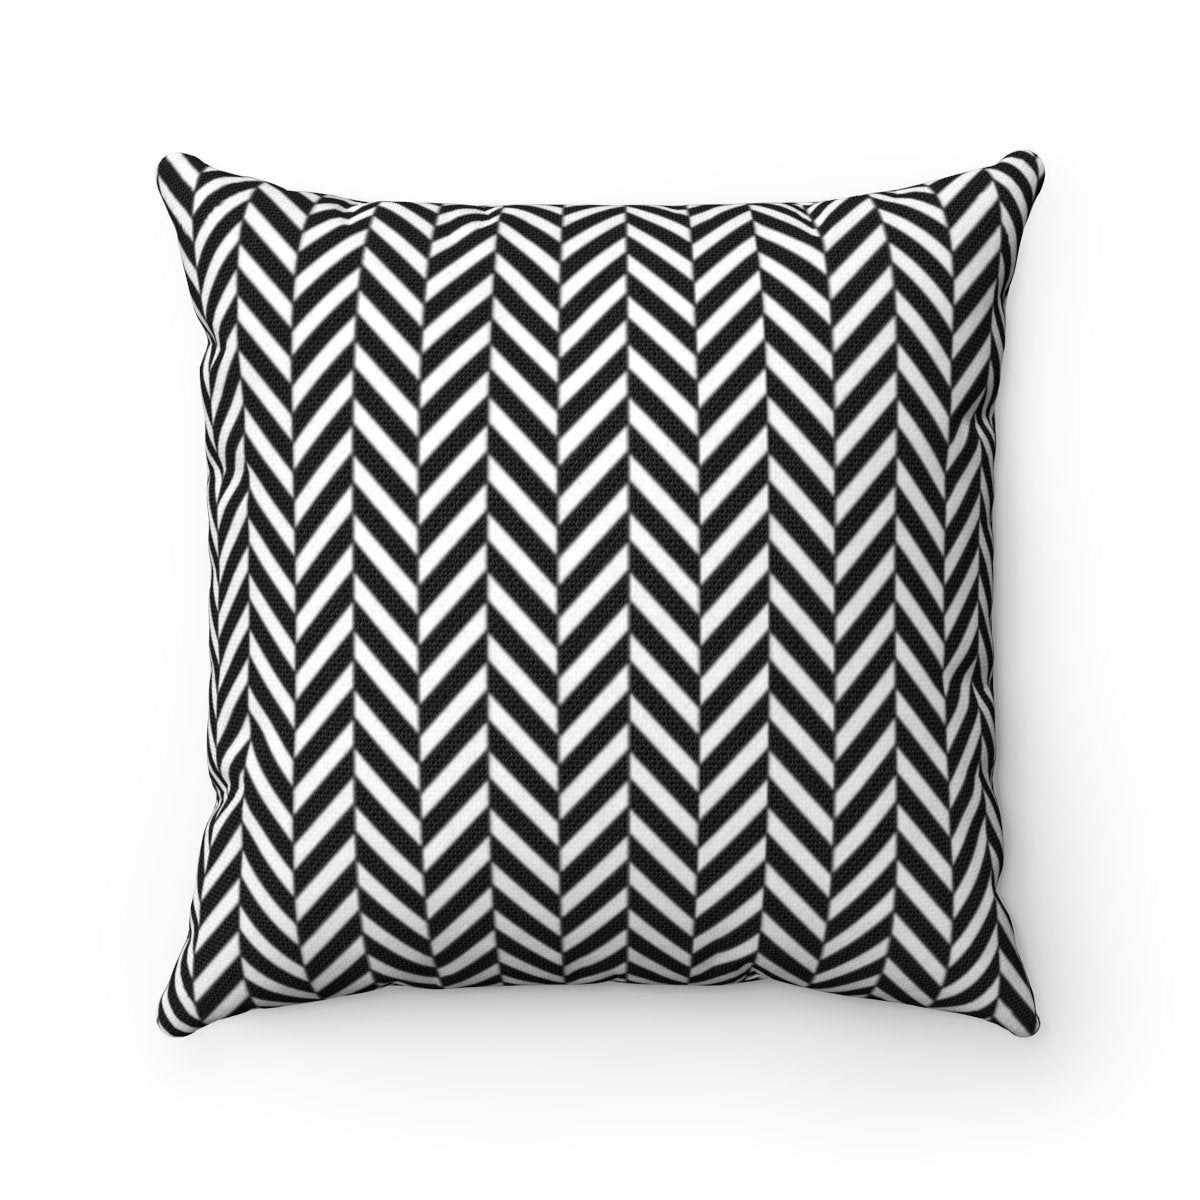 Herringbone 2 in 1 decorative cushion cover-Home Decor - Decorative Accents - Pillows & Throws - Decorative Pillows-Maison d'Elite-14x14-Très Elite